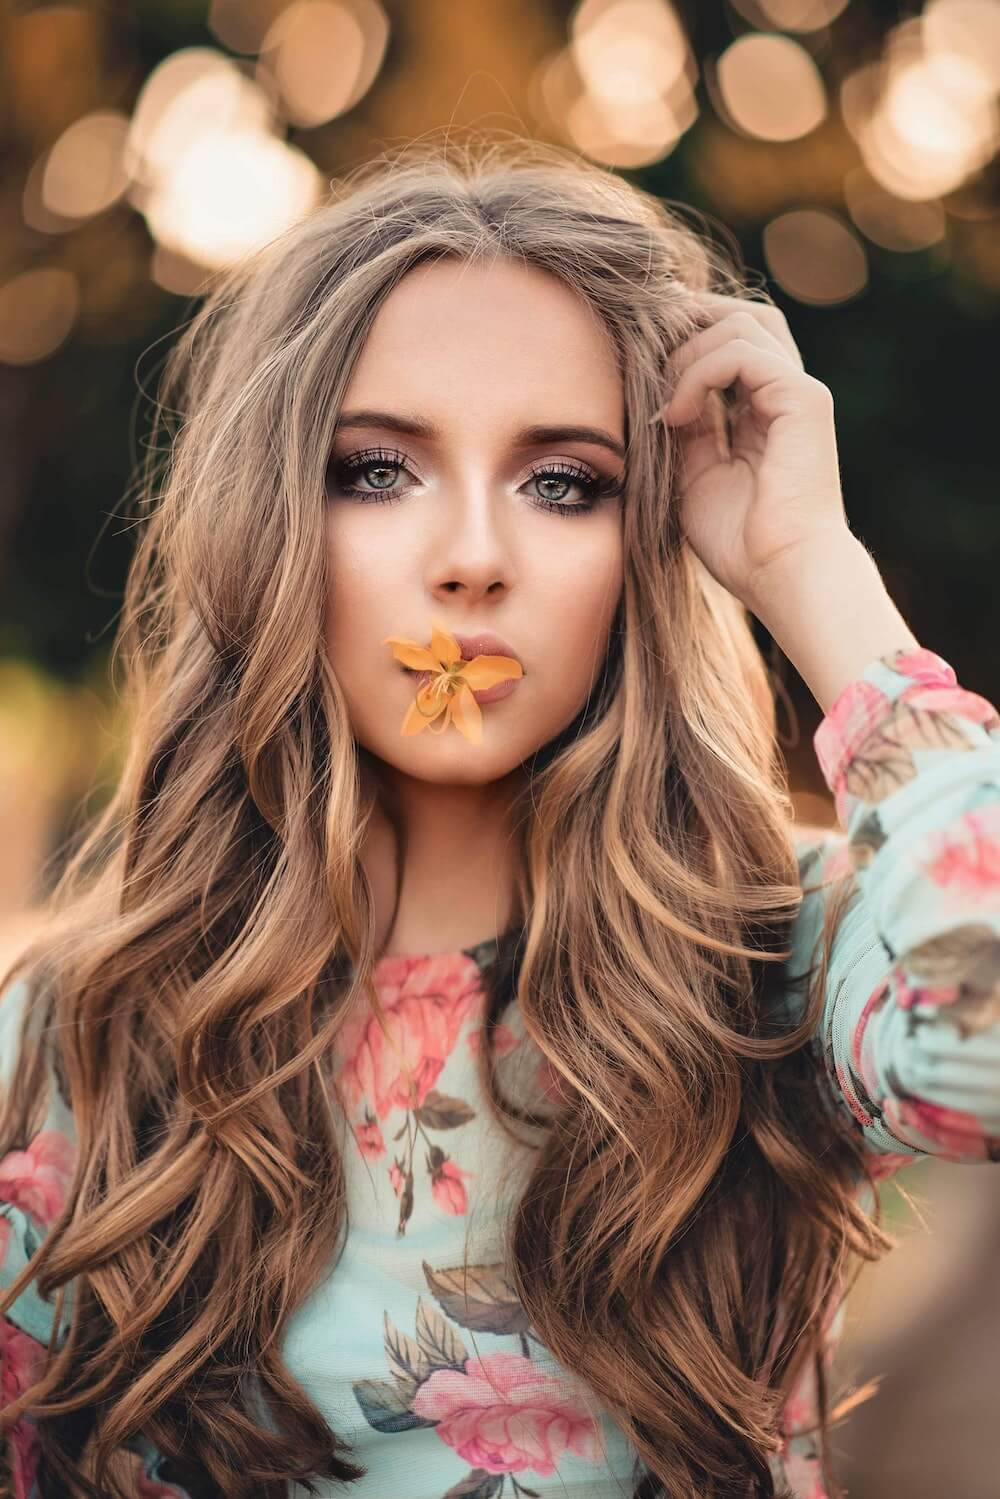 Woman with orange flower on her lips